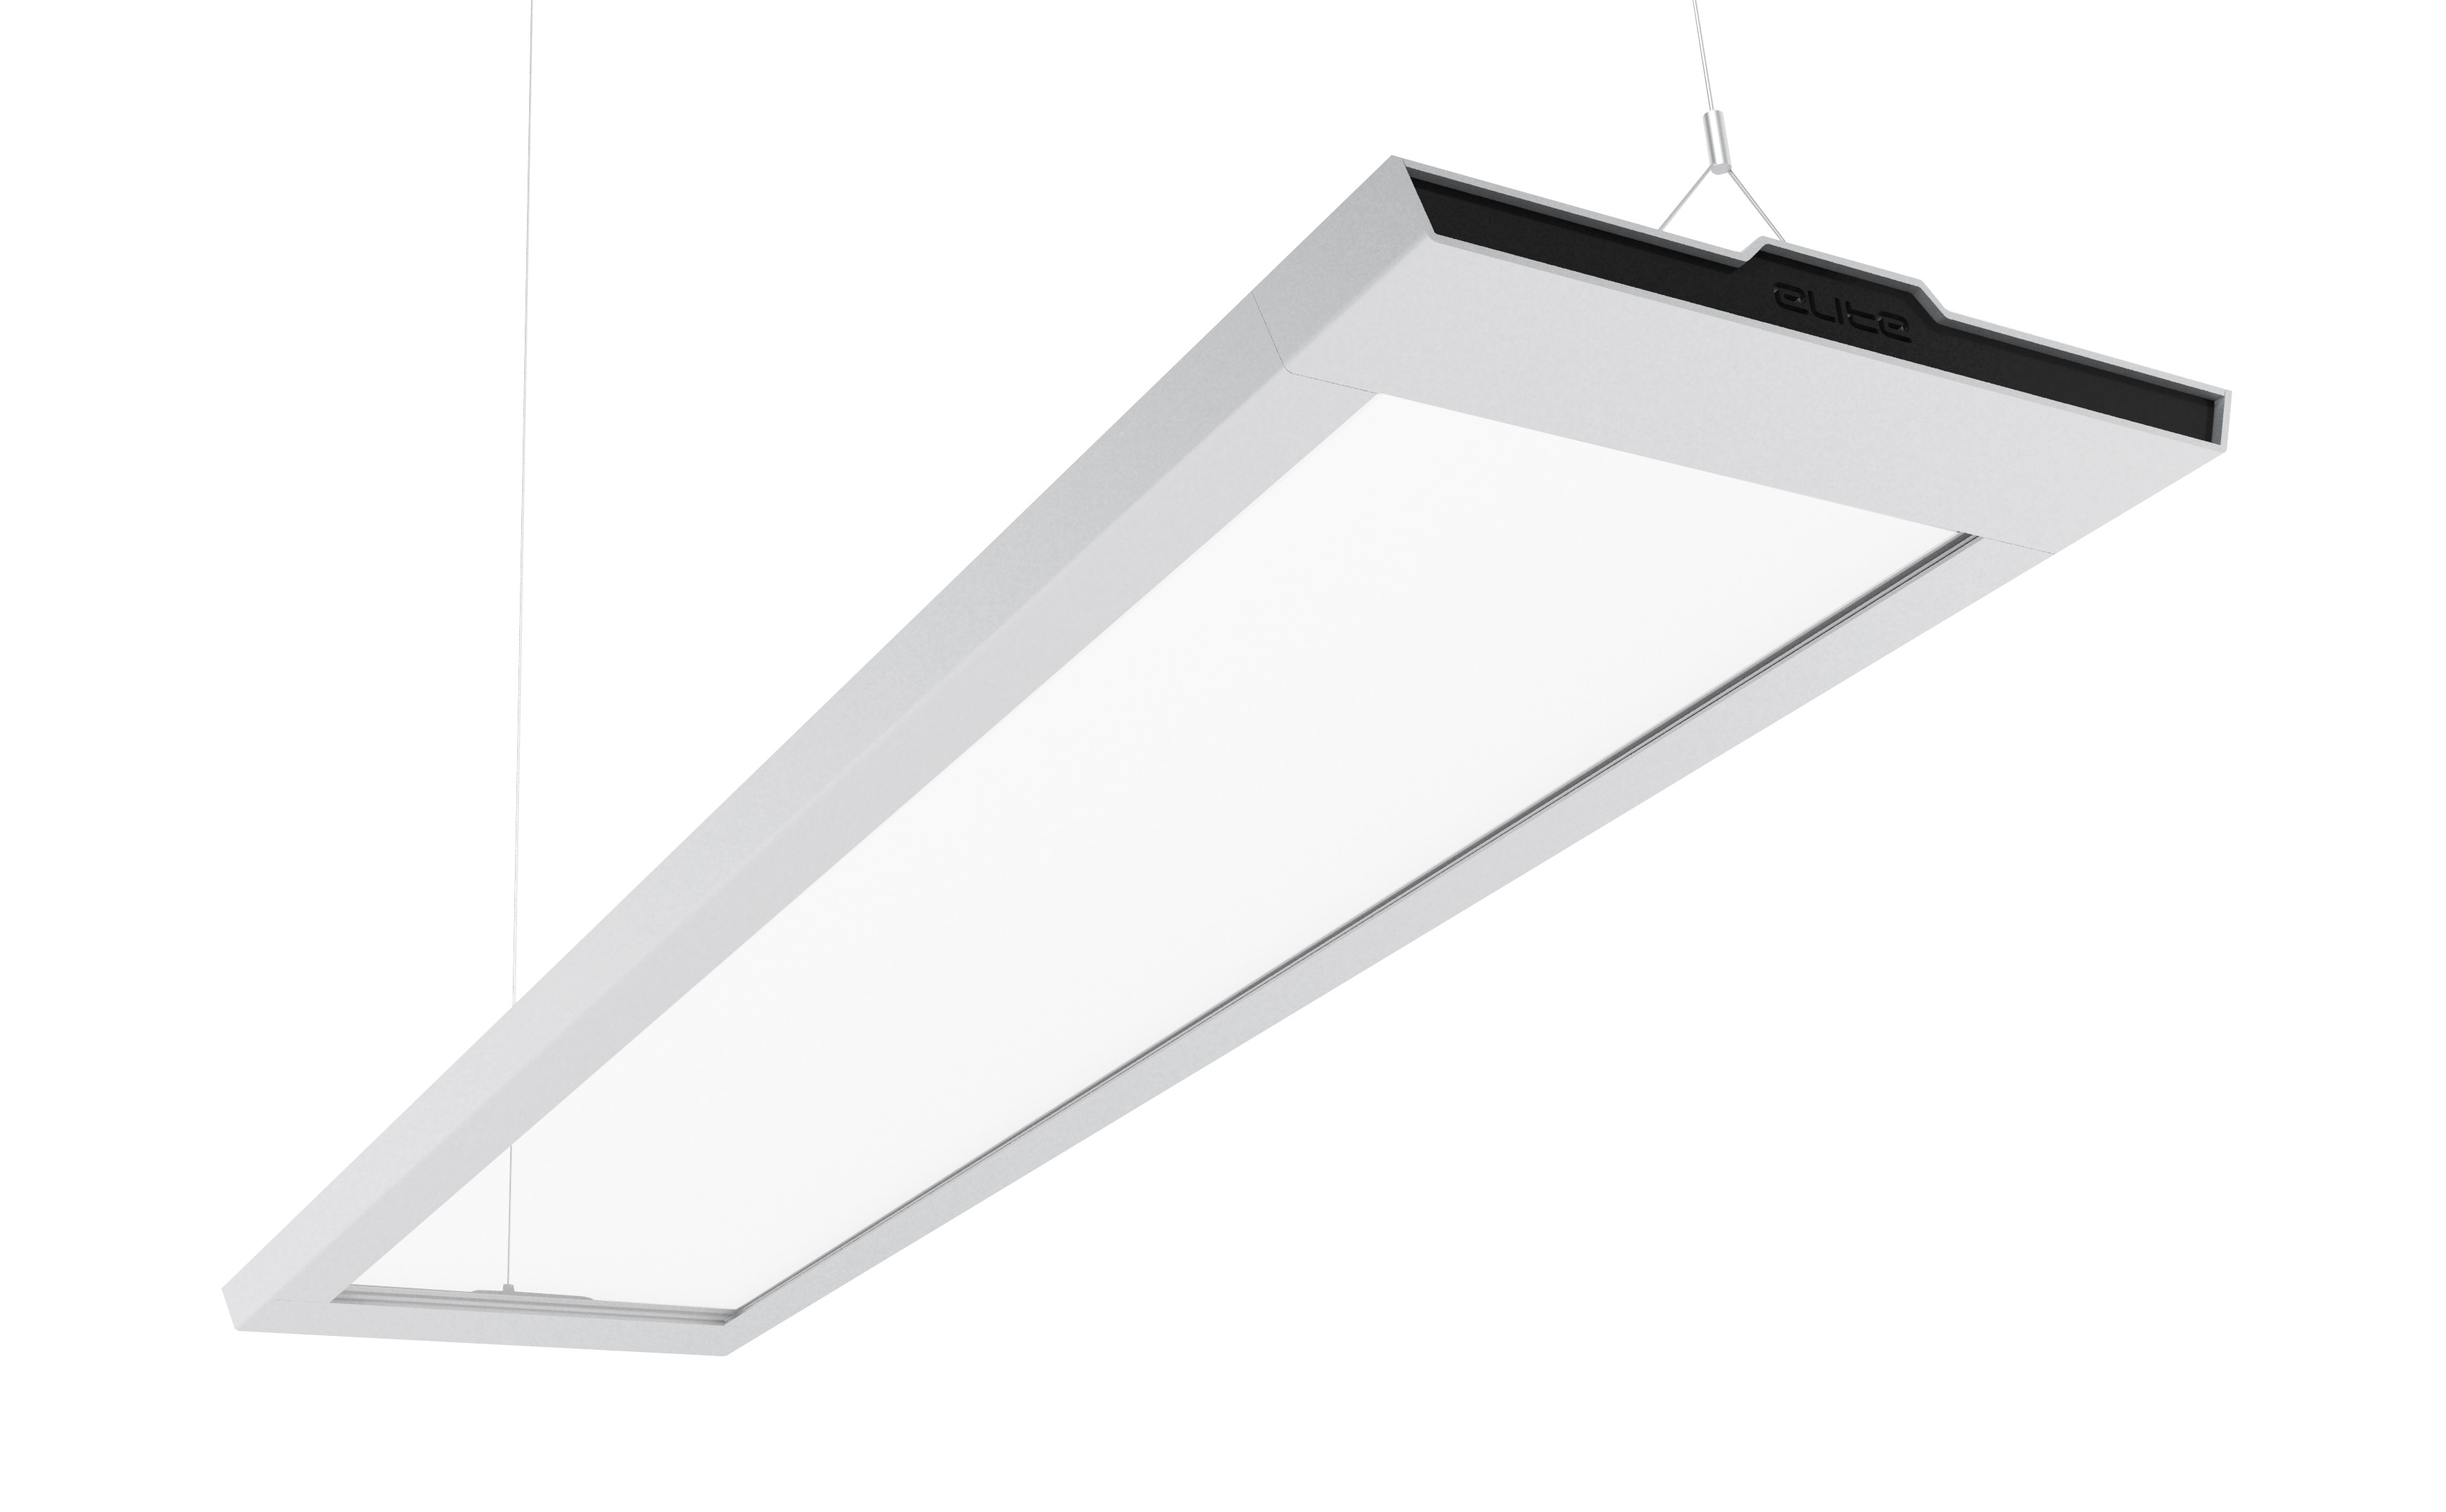 Ideal luminaire has to be in symbiosis with space atmosphere and purpose